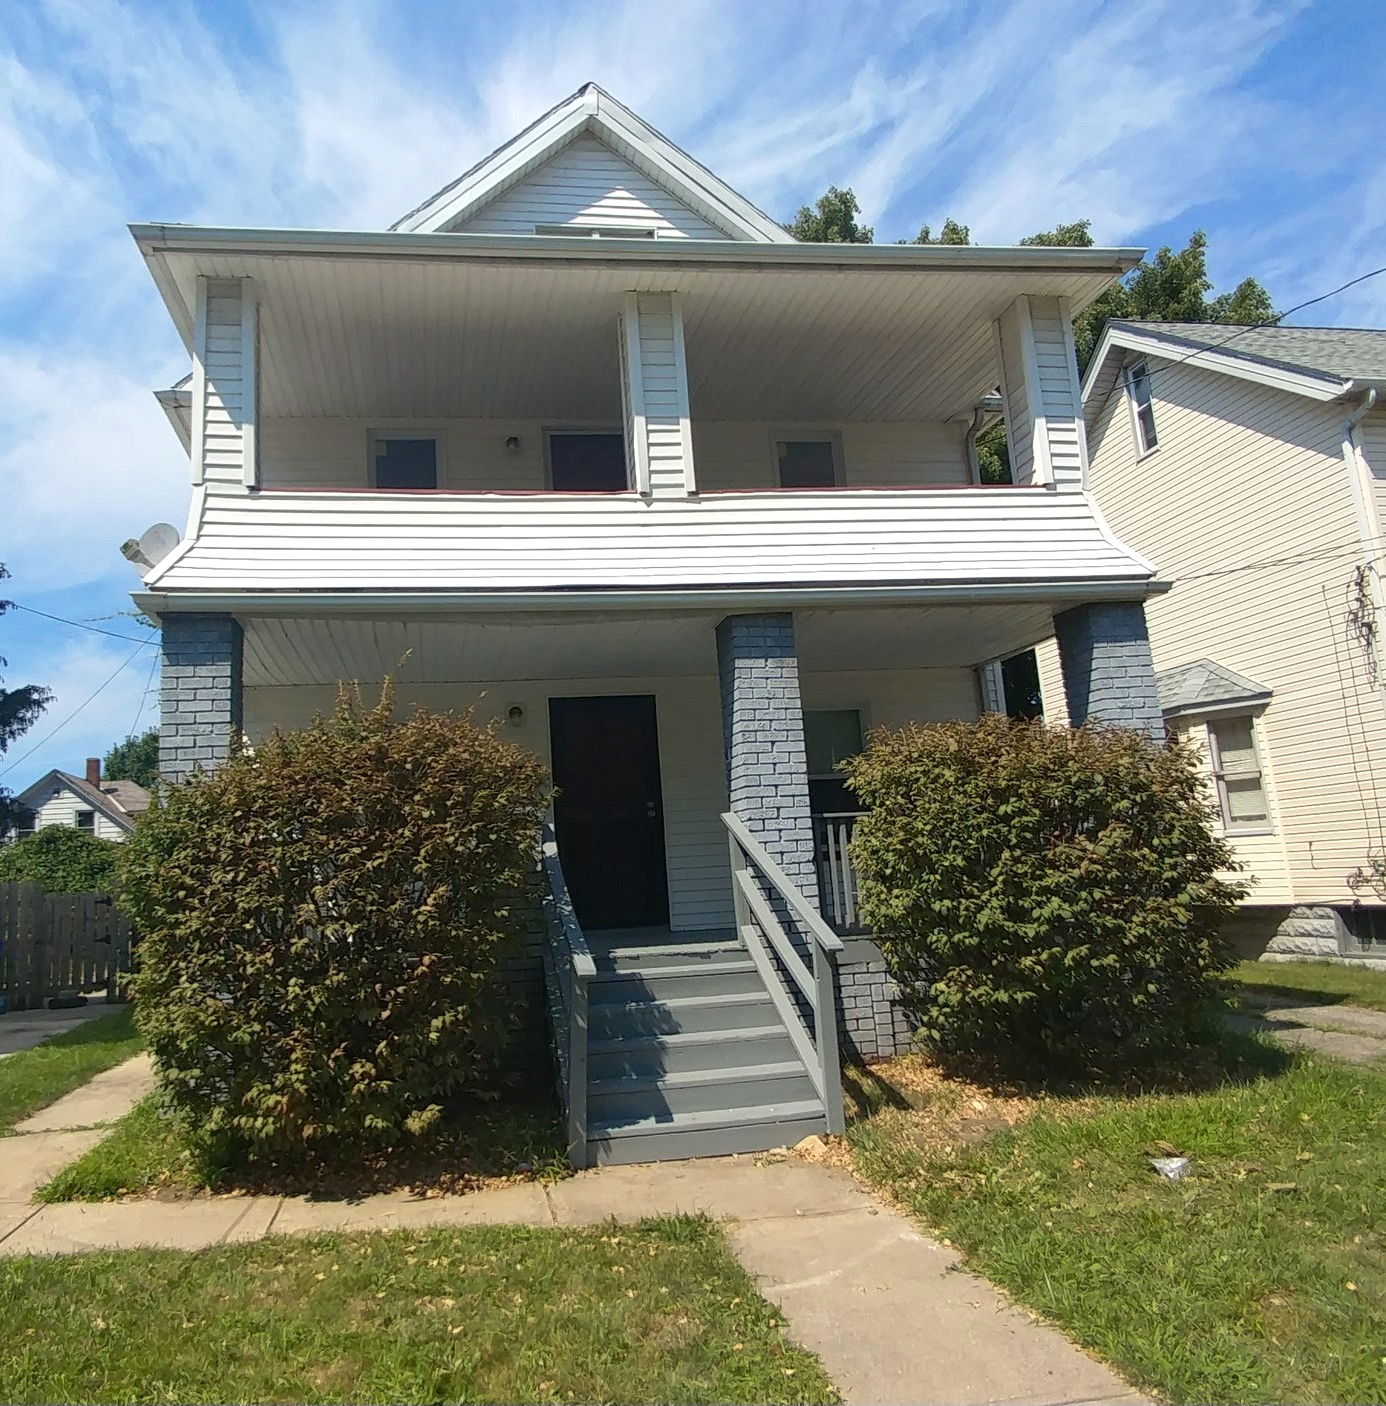 14113 Sylvia Ave., Cleveland | 5 Bed 2 Bath | 1,680 Sq. Ft. | $15,000